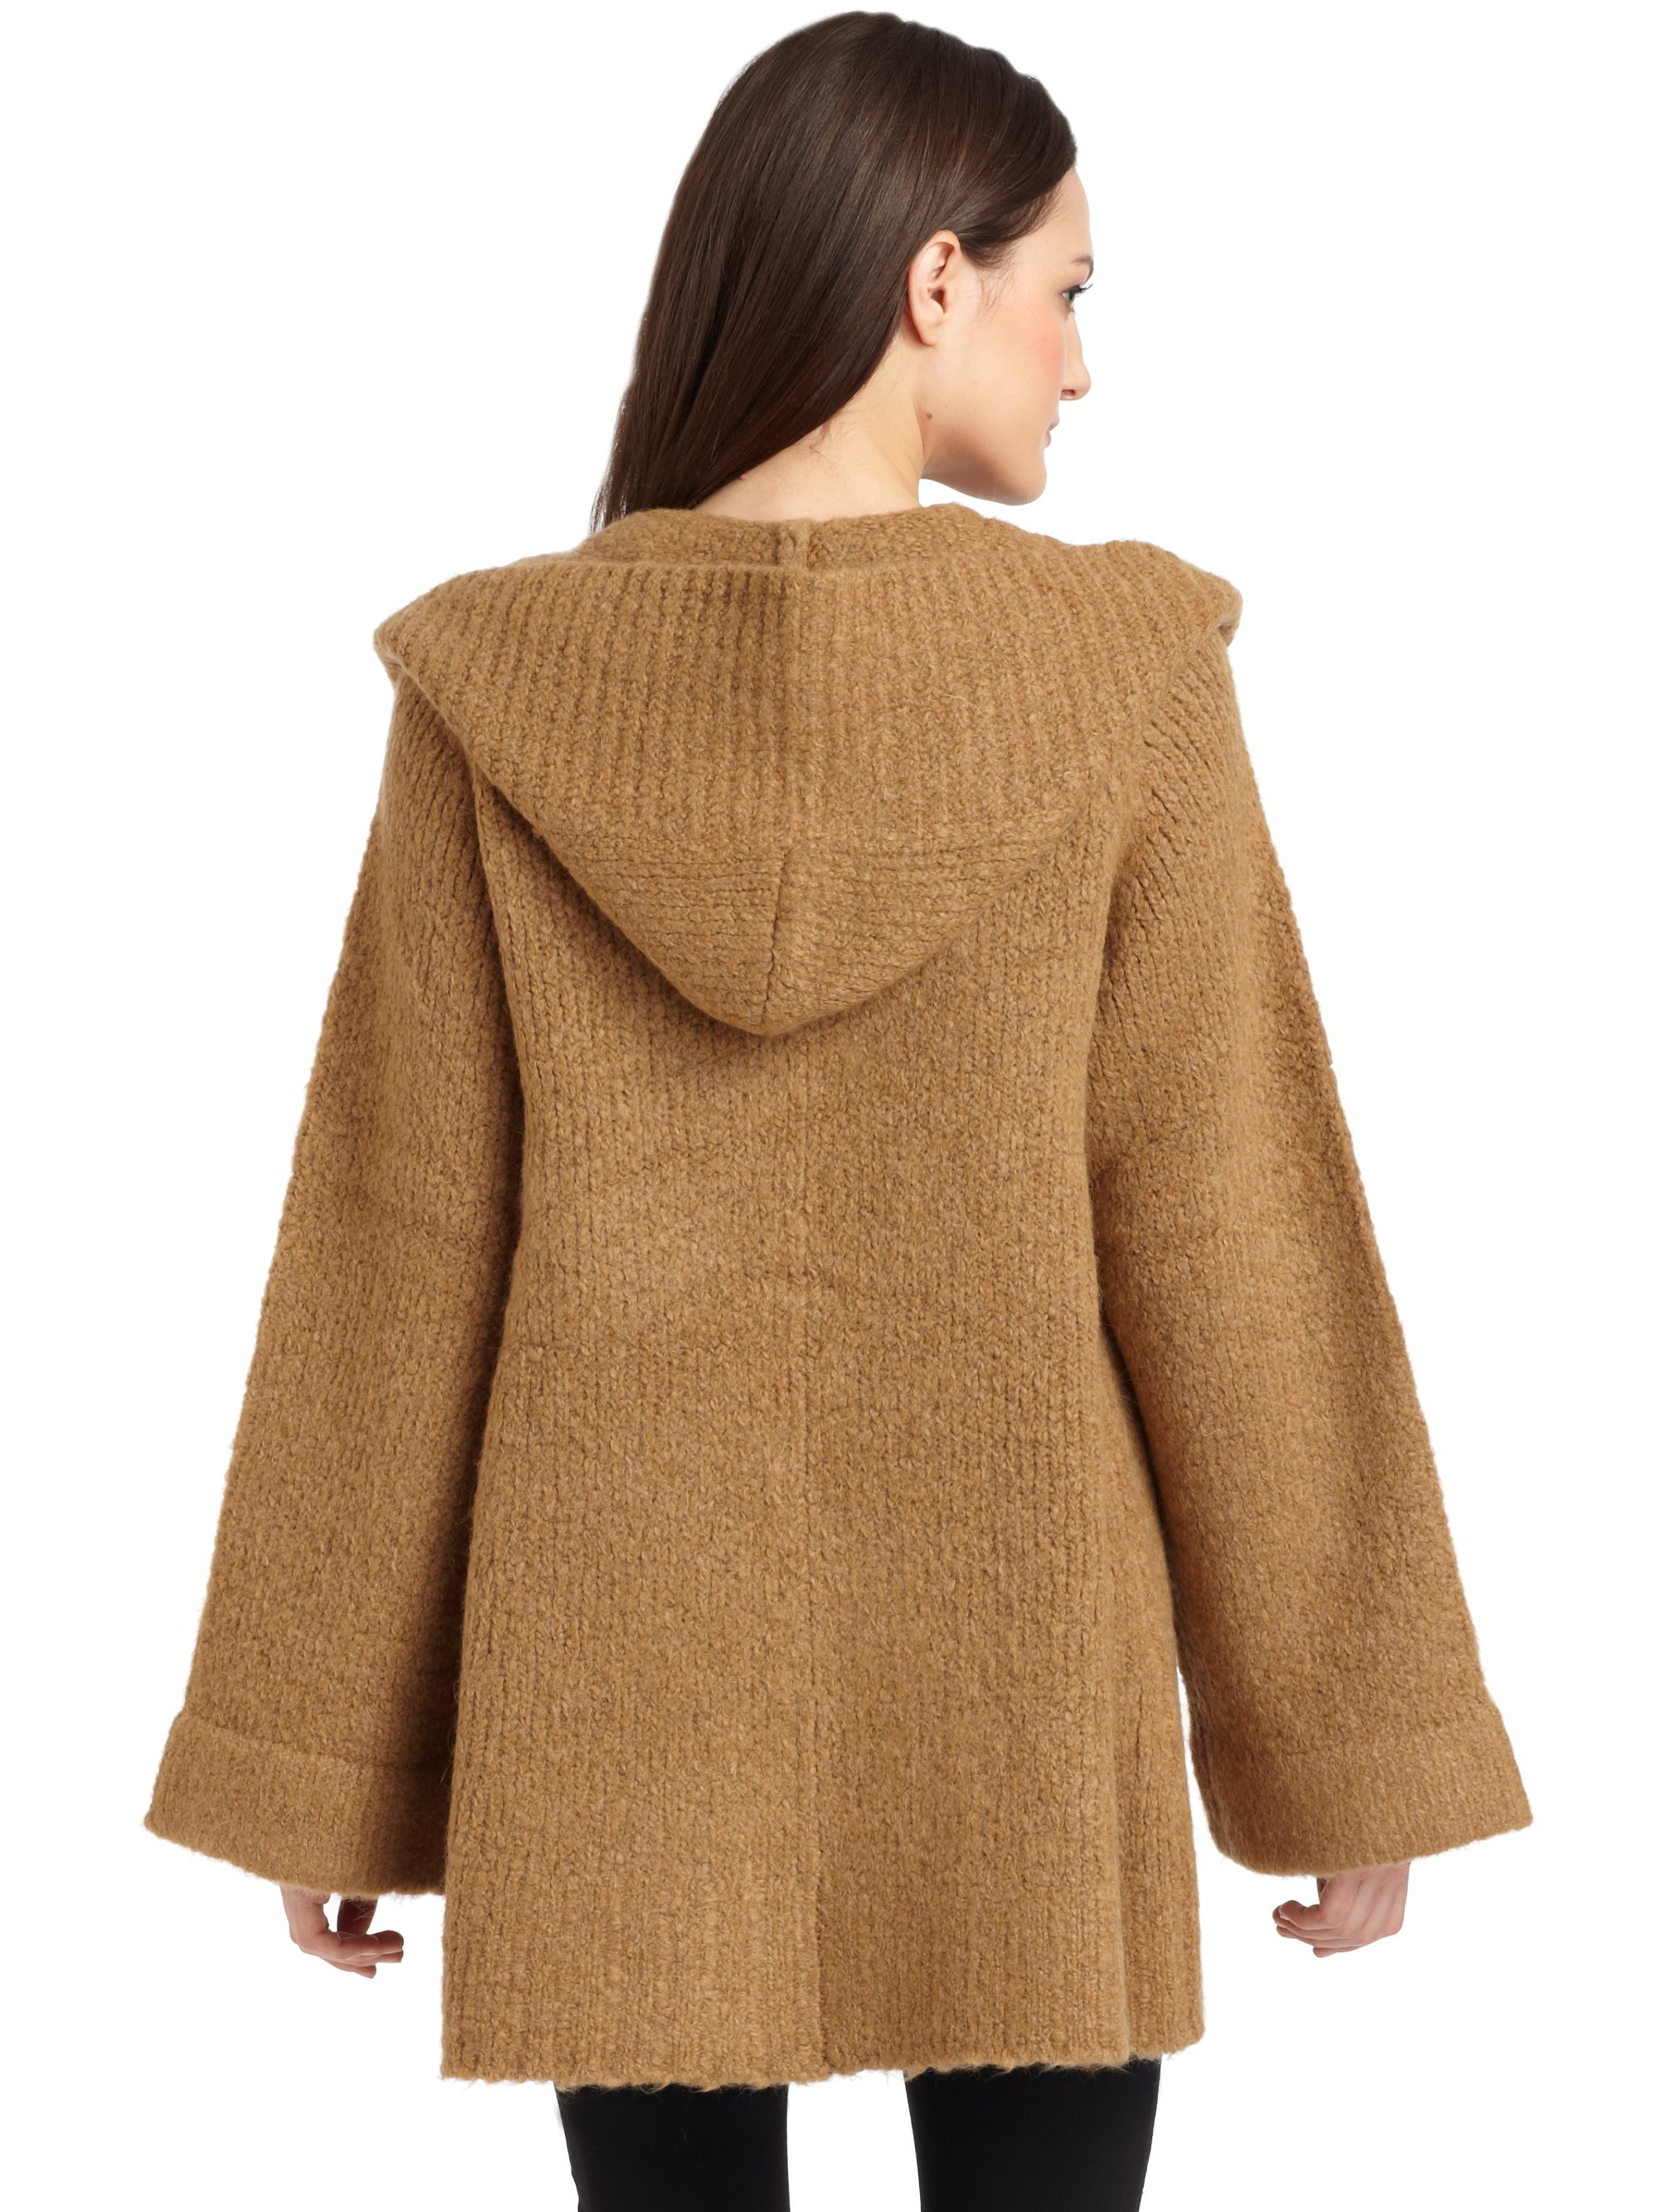 Elizabeth and james Hooded Wrap Cardigan Sweater in Brown | Lyst